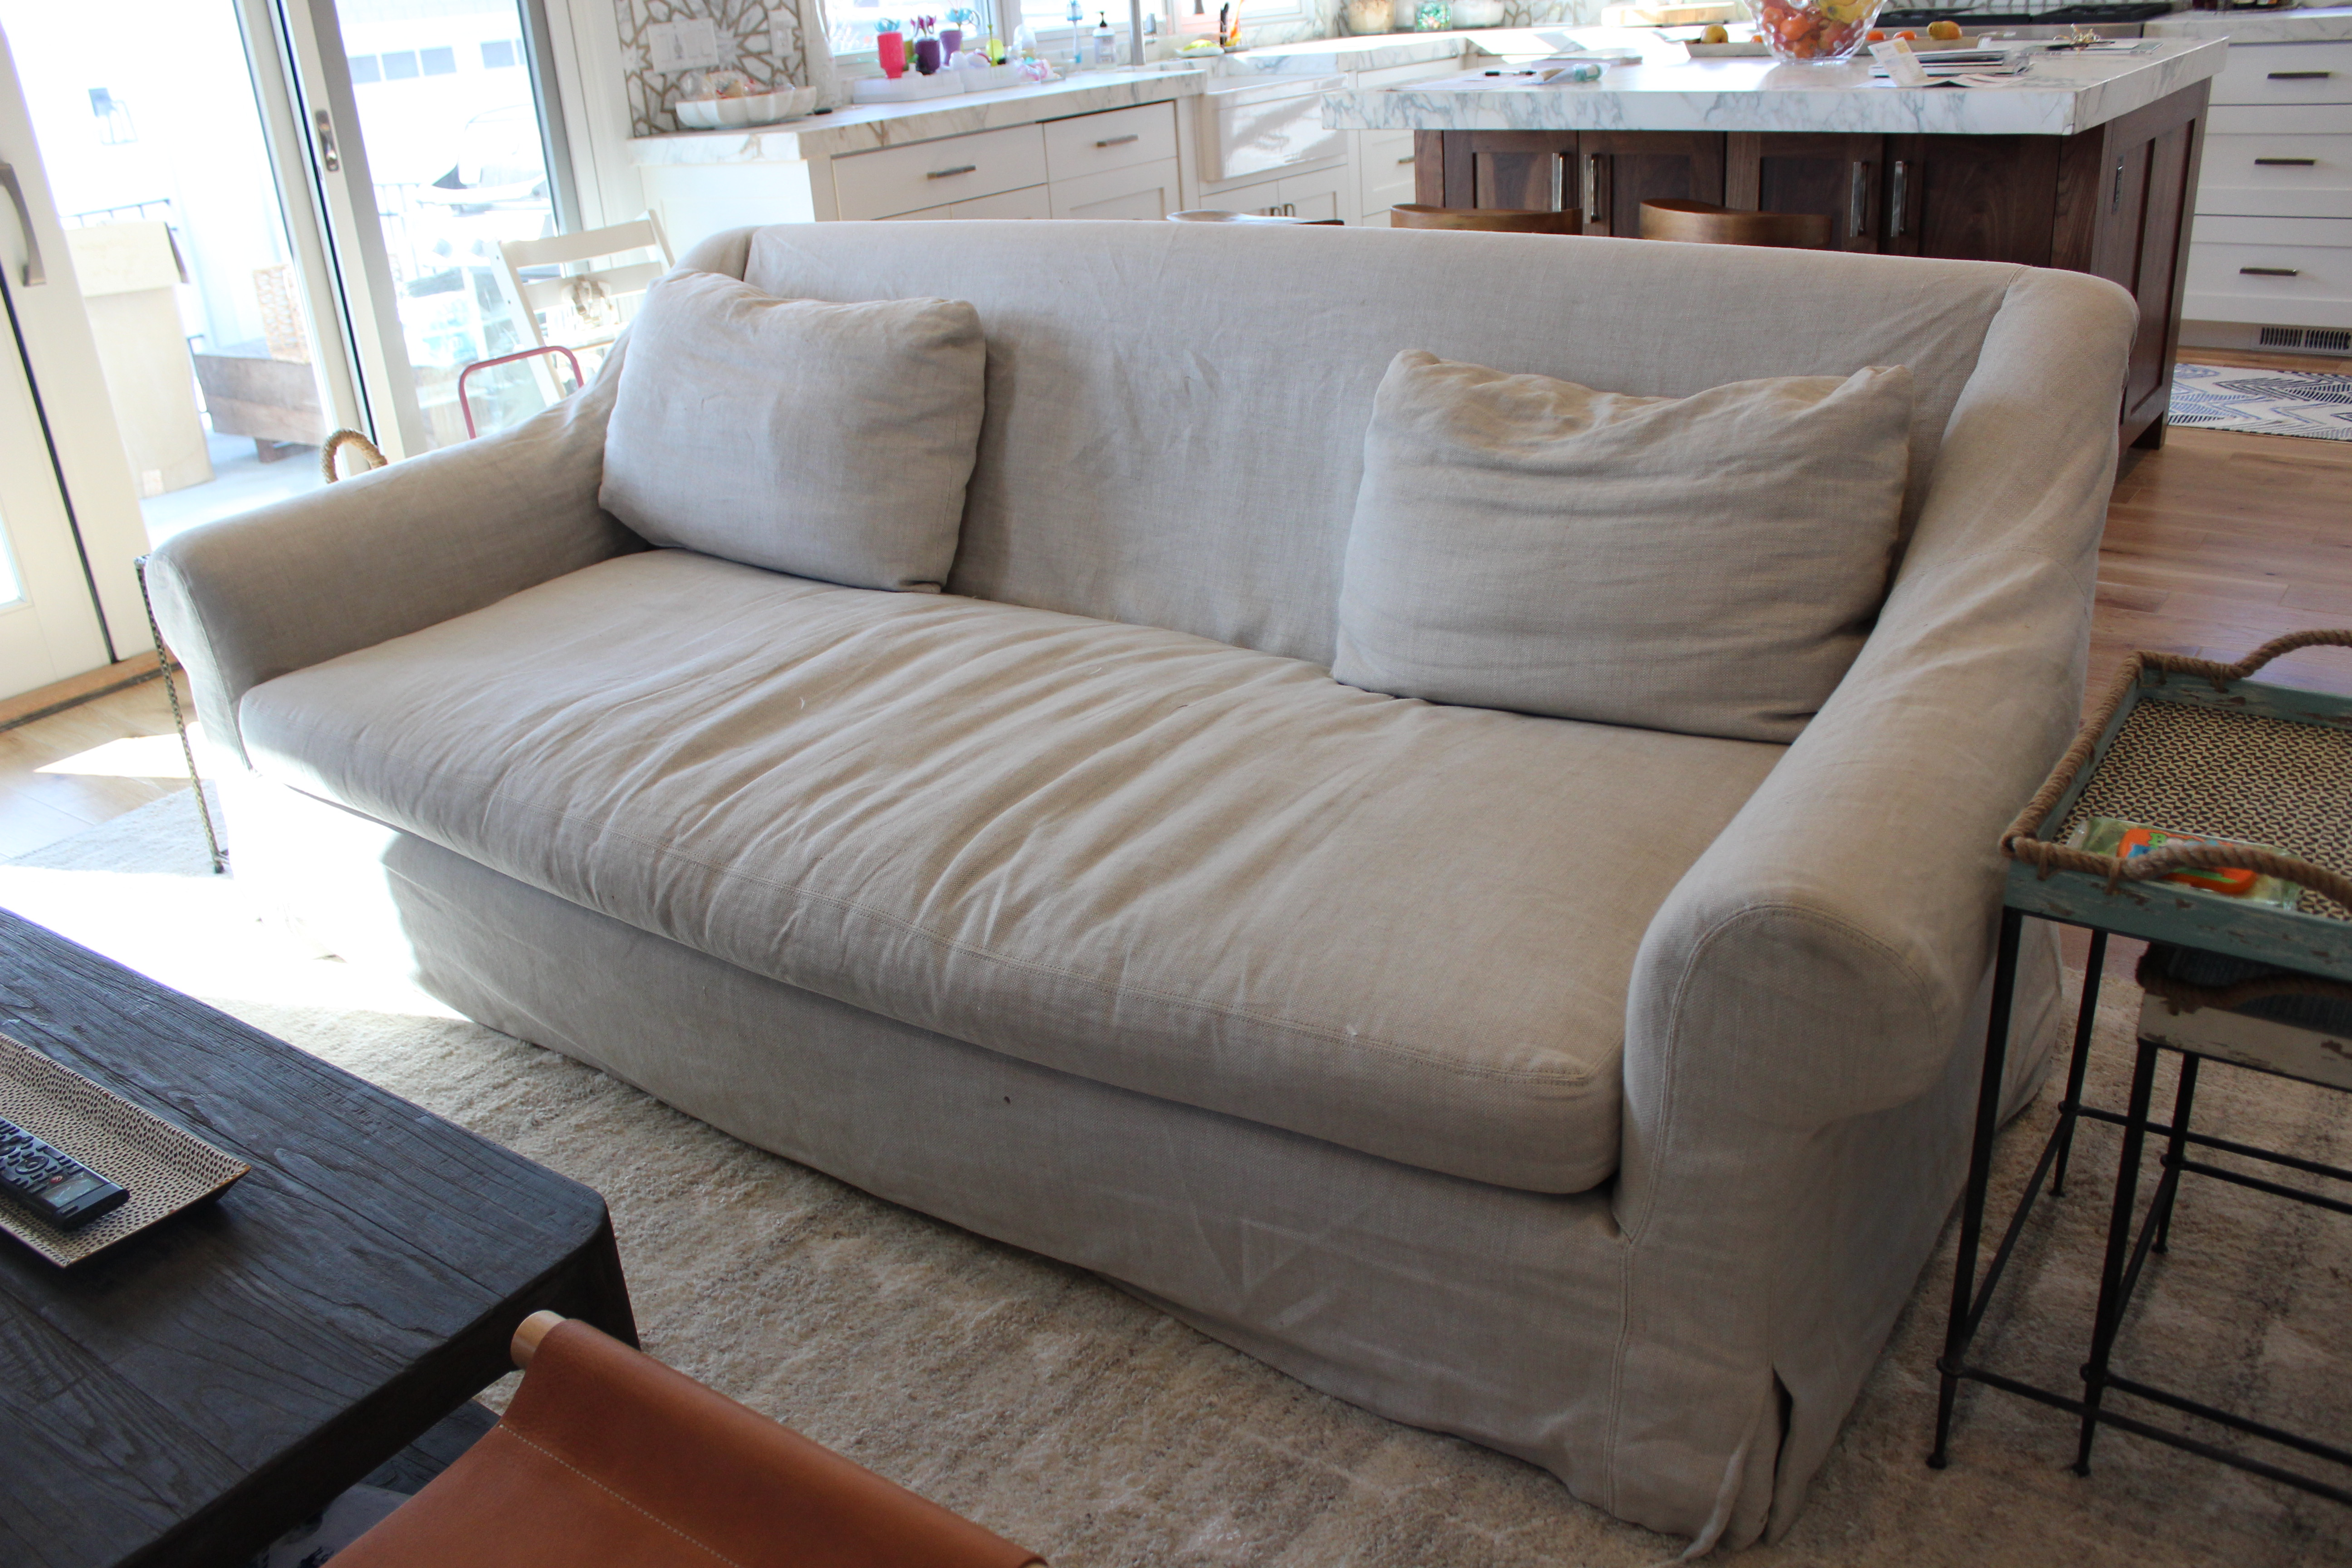 Slipcovers and more washable sofa 100 images another great find on zulily chic home melinda - Choosing the best slipcover fabrics for your home ...